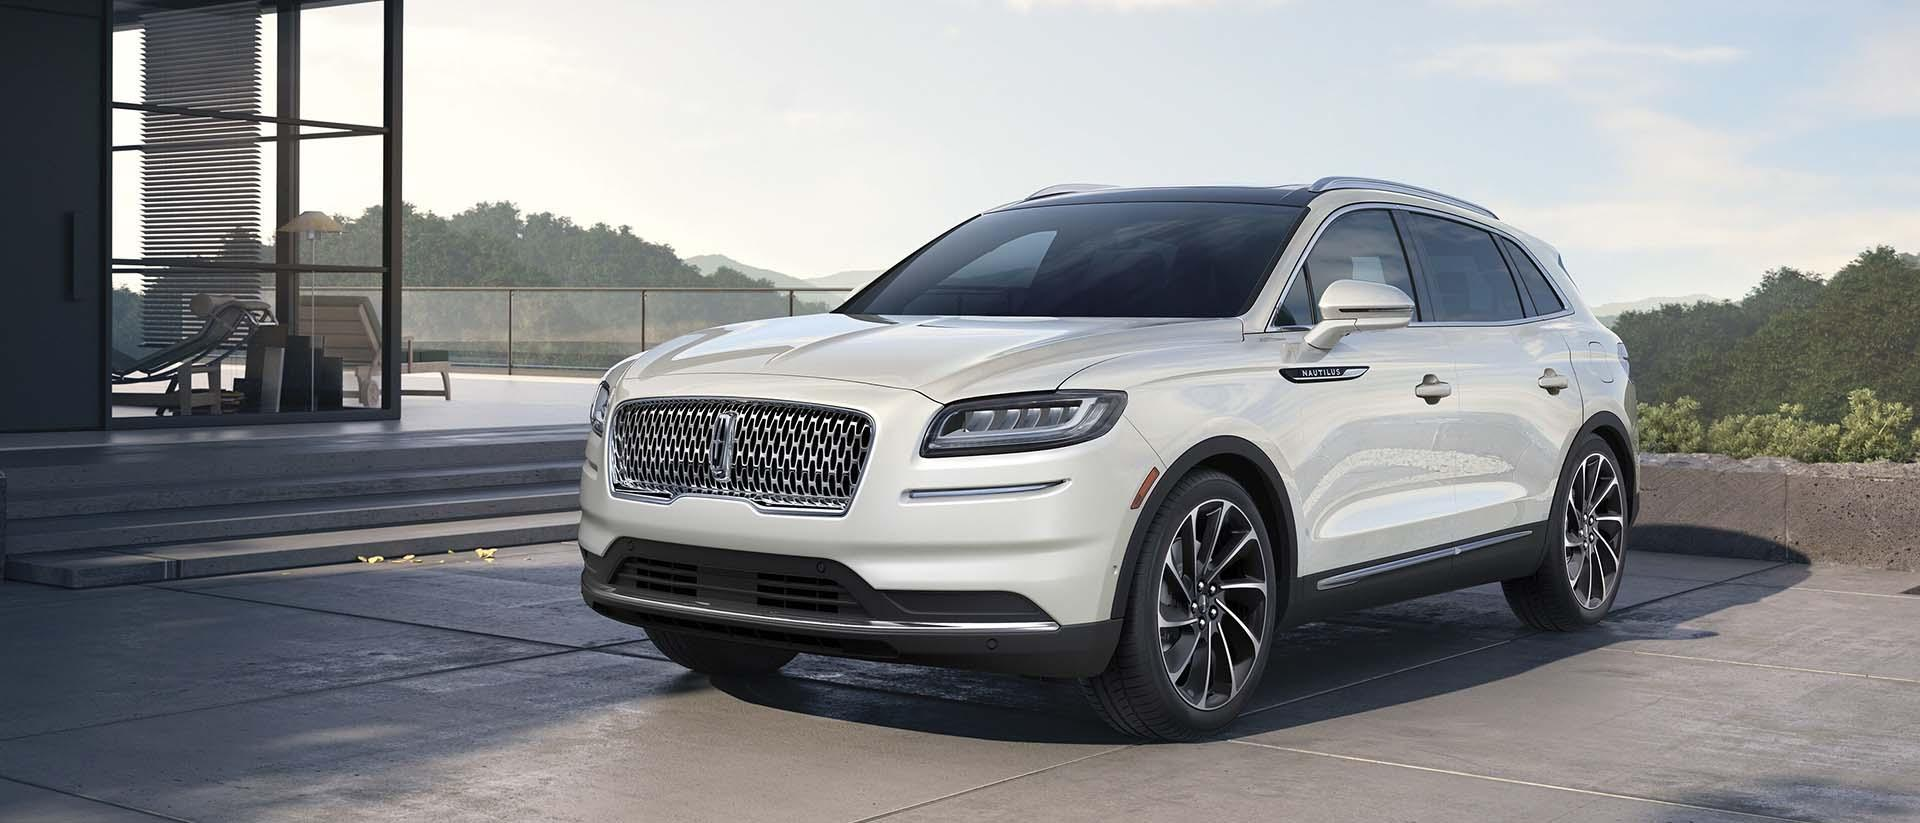 2022 Lincoln Nautilus   South Bay Lincoln